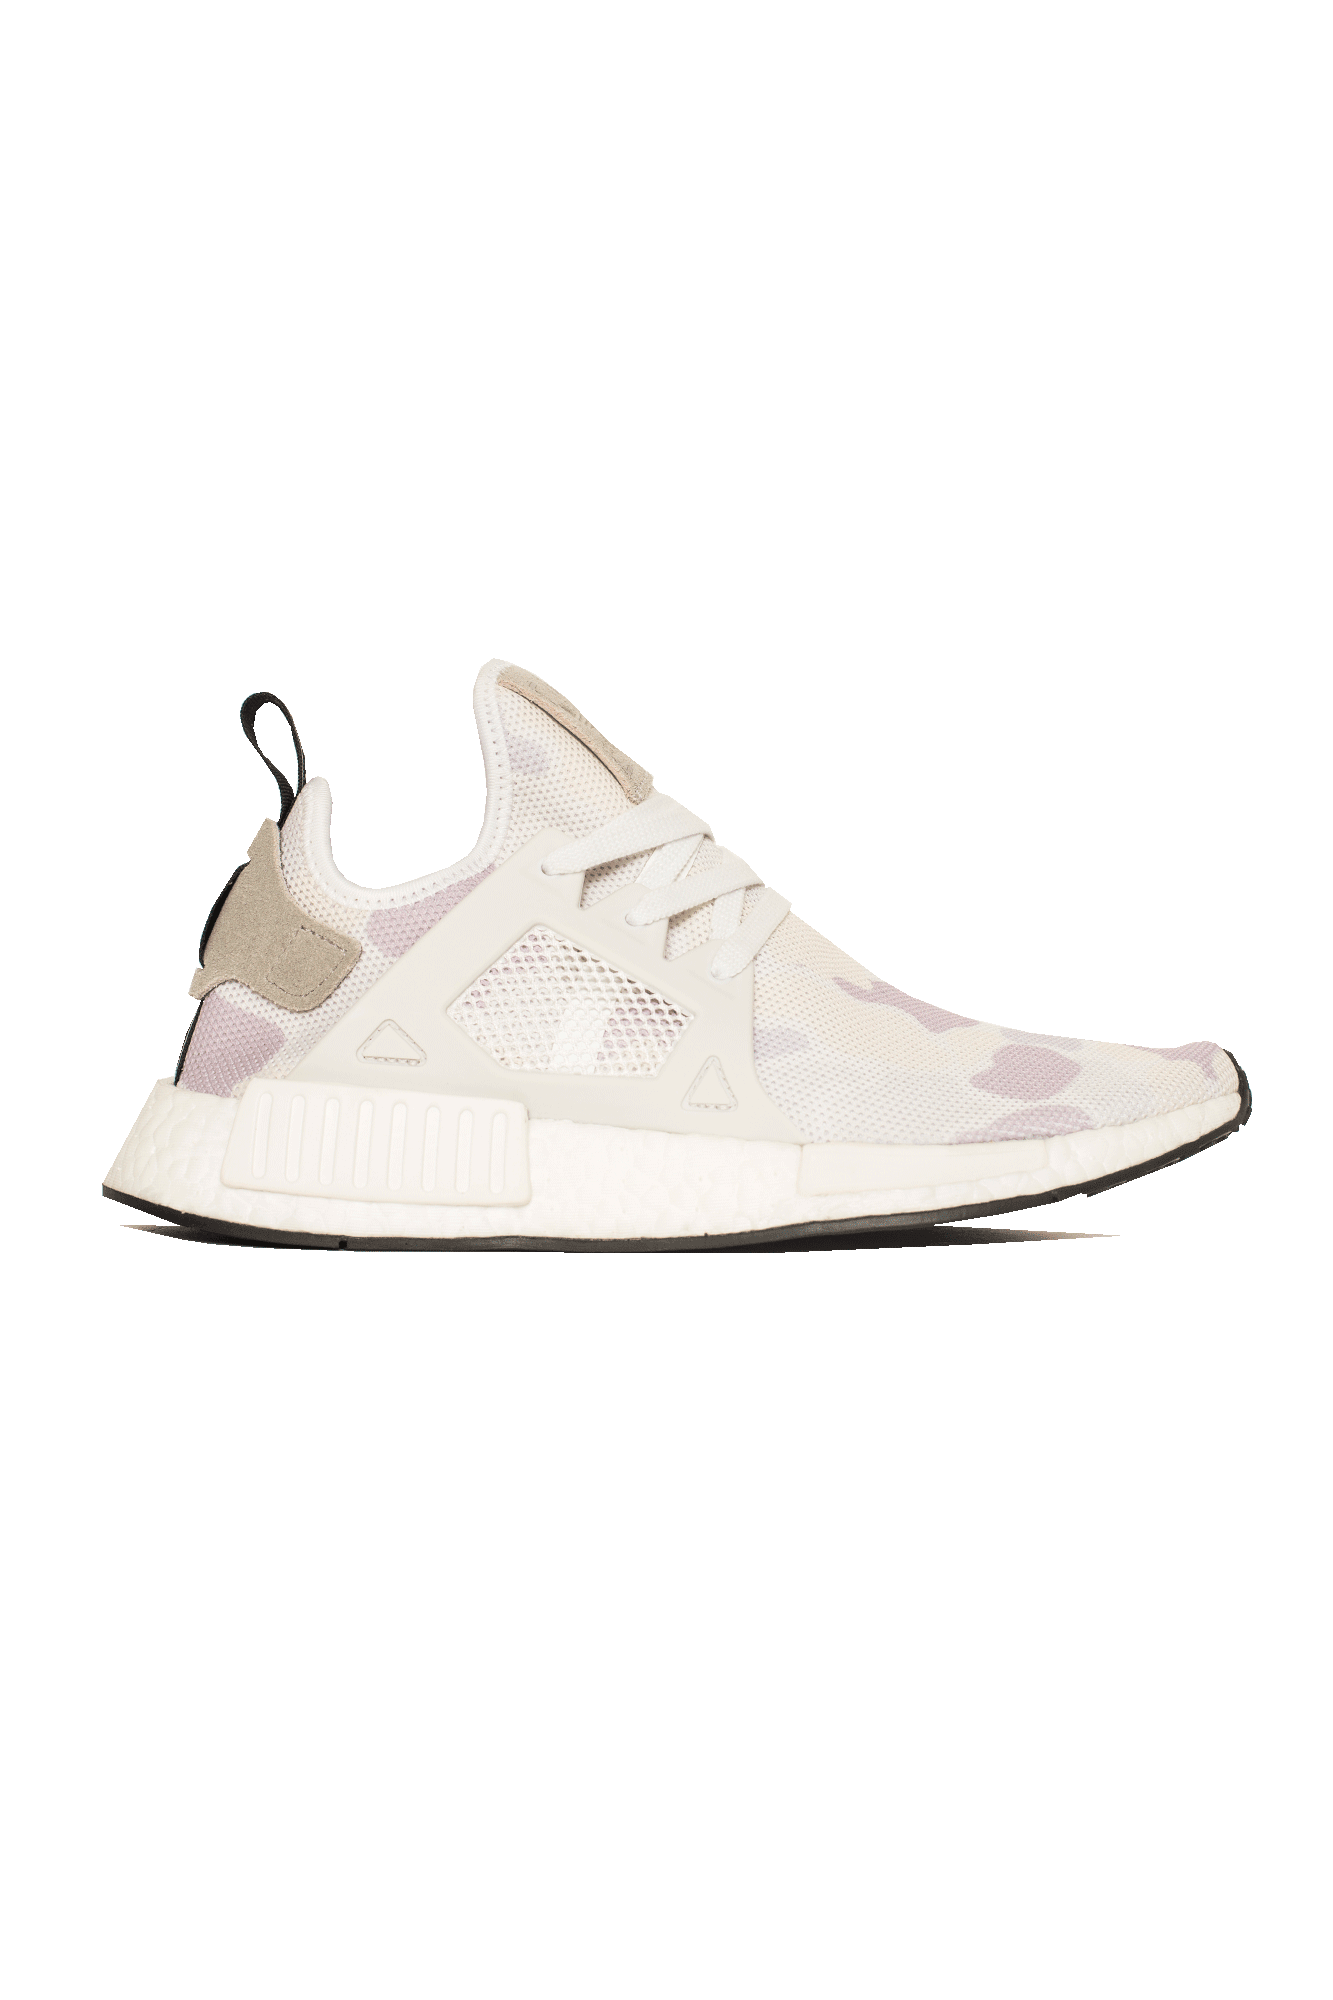 Sneakers Adidas Originals NDM XR1 White - One Block Down